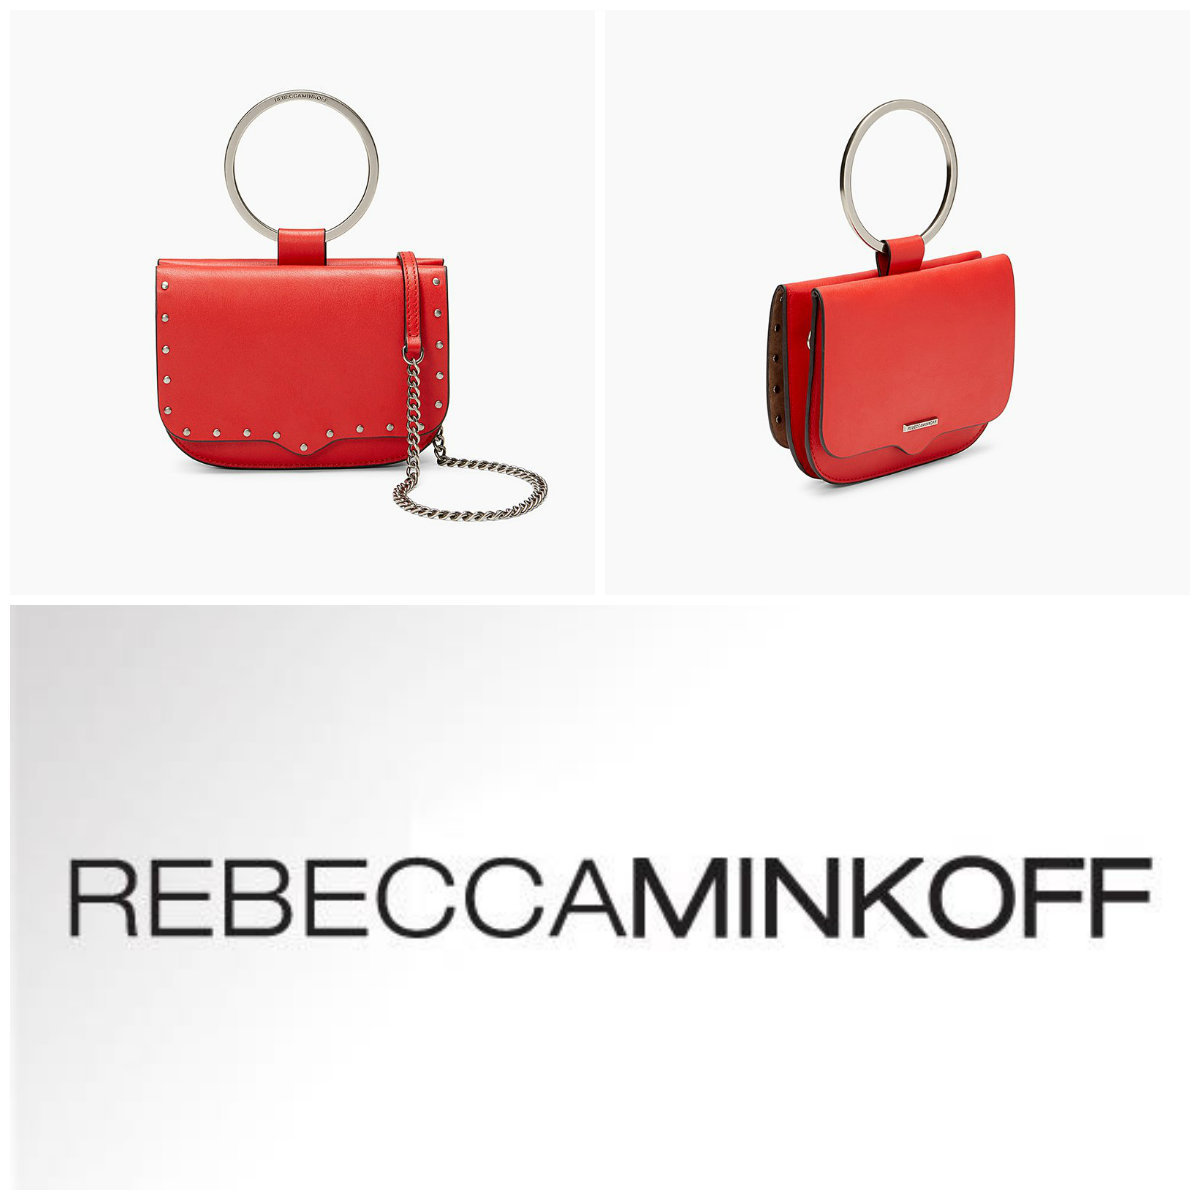 特価!Rebecca Minkoff☆RING CROSSBODY BAG